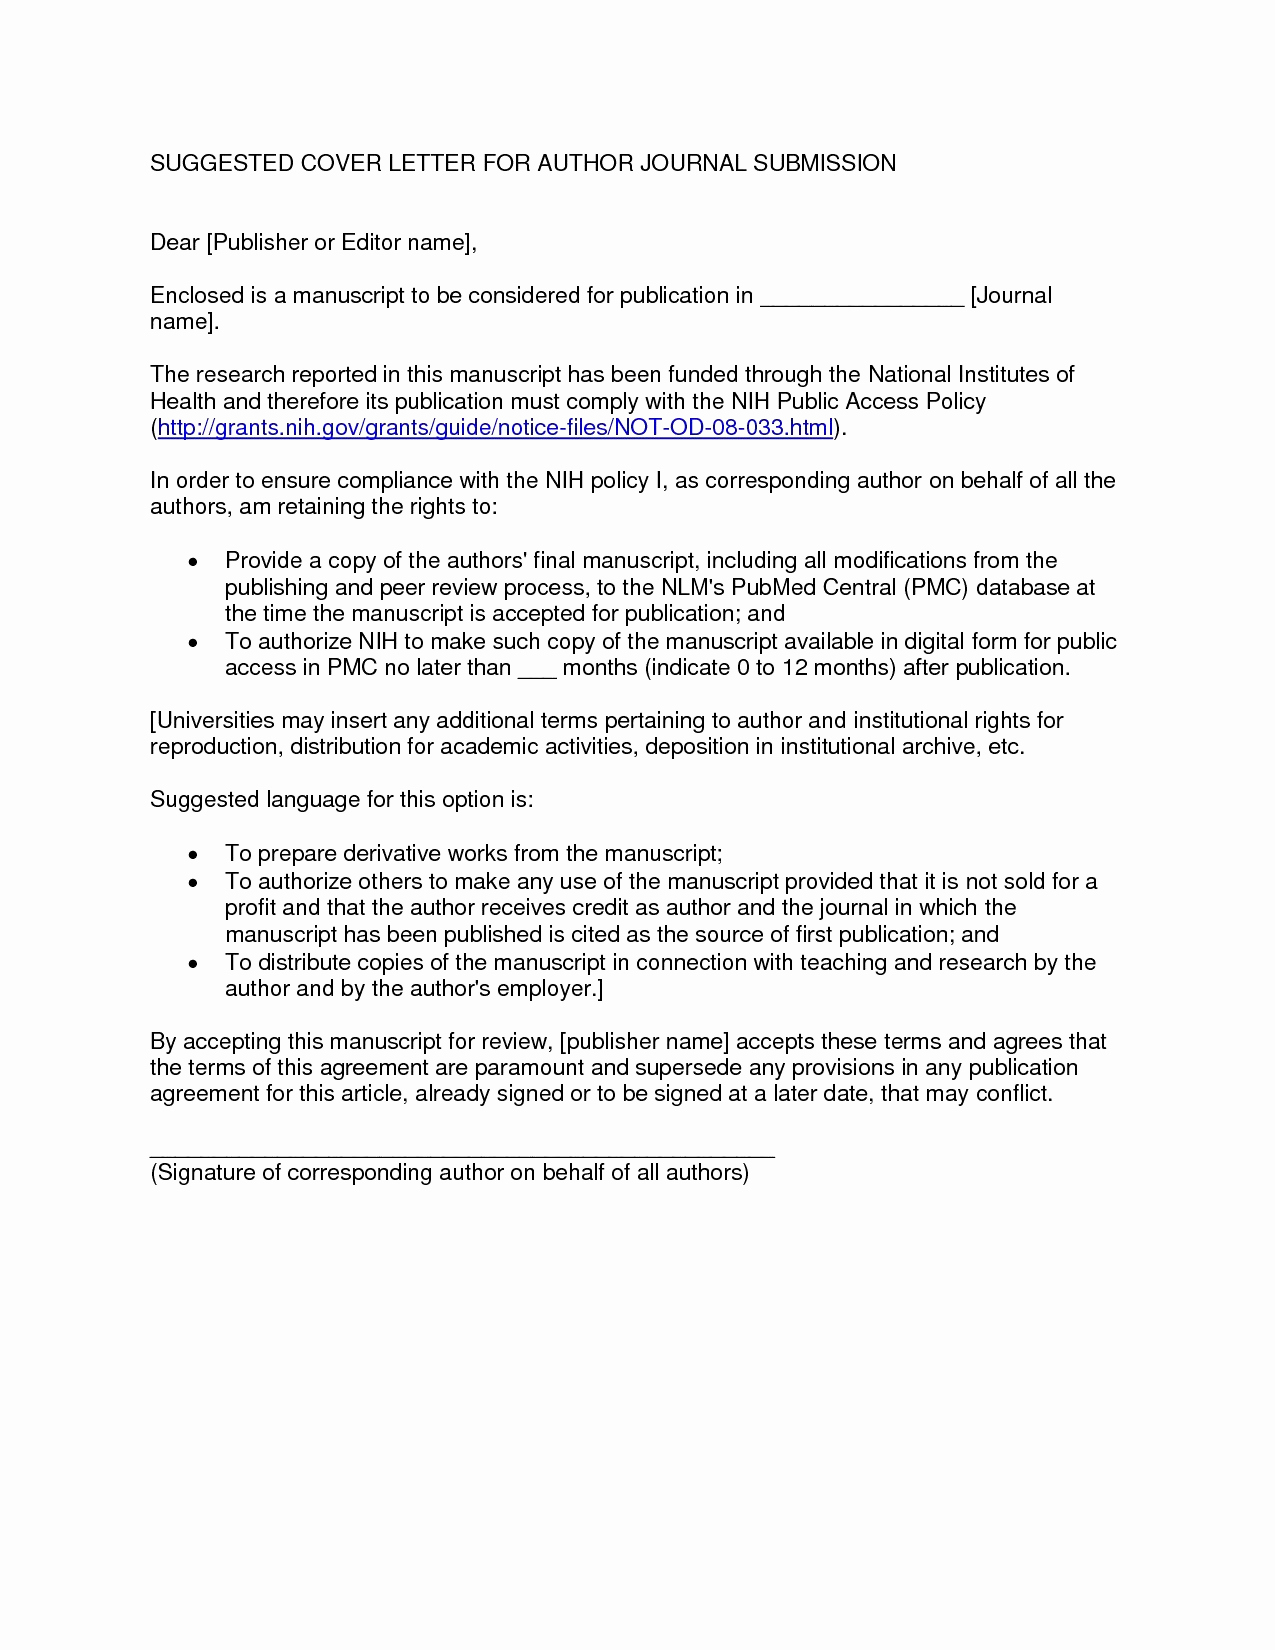 Career Builder Cover Letter Template - 20 Career Builder Cover Letter